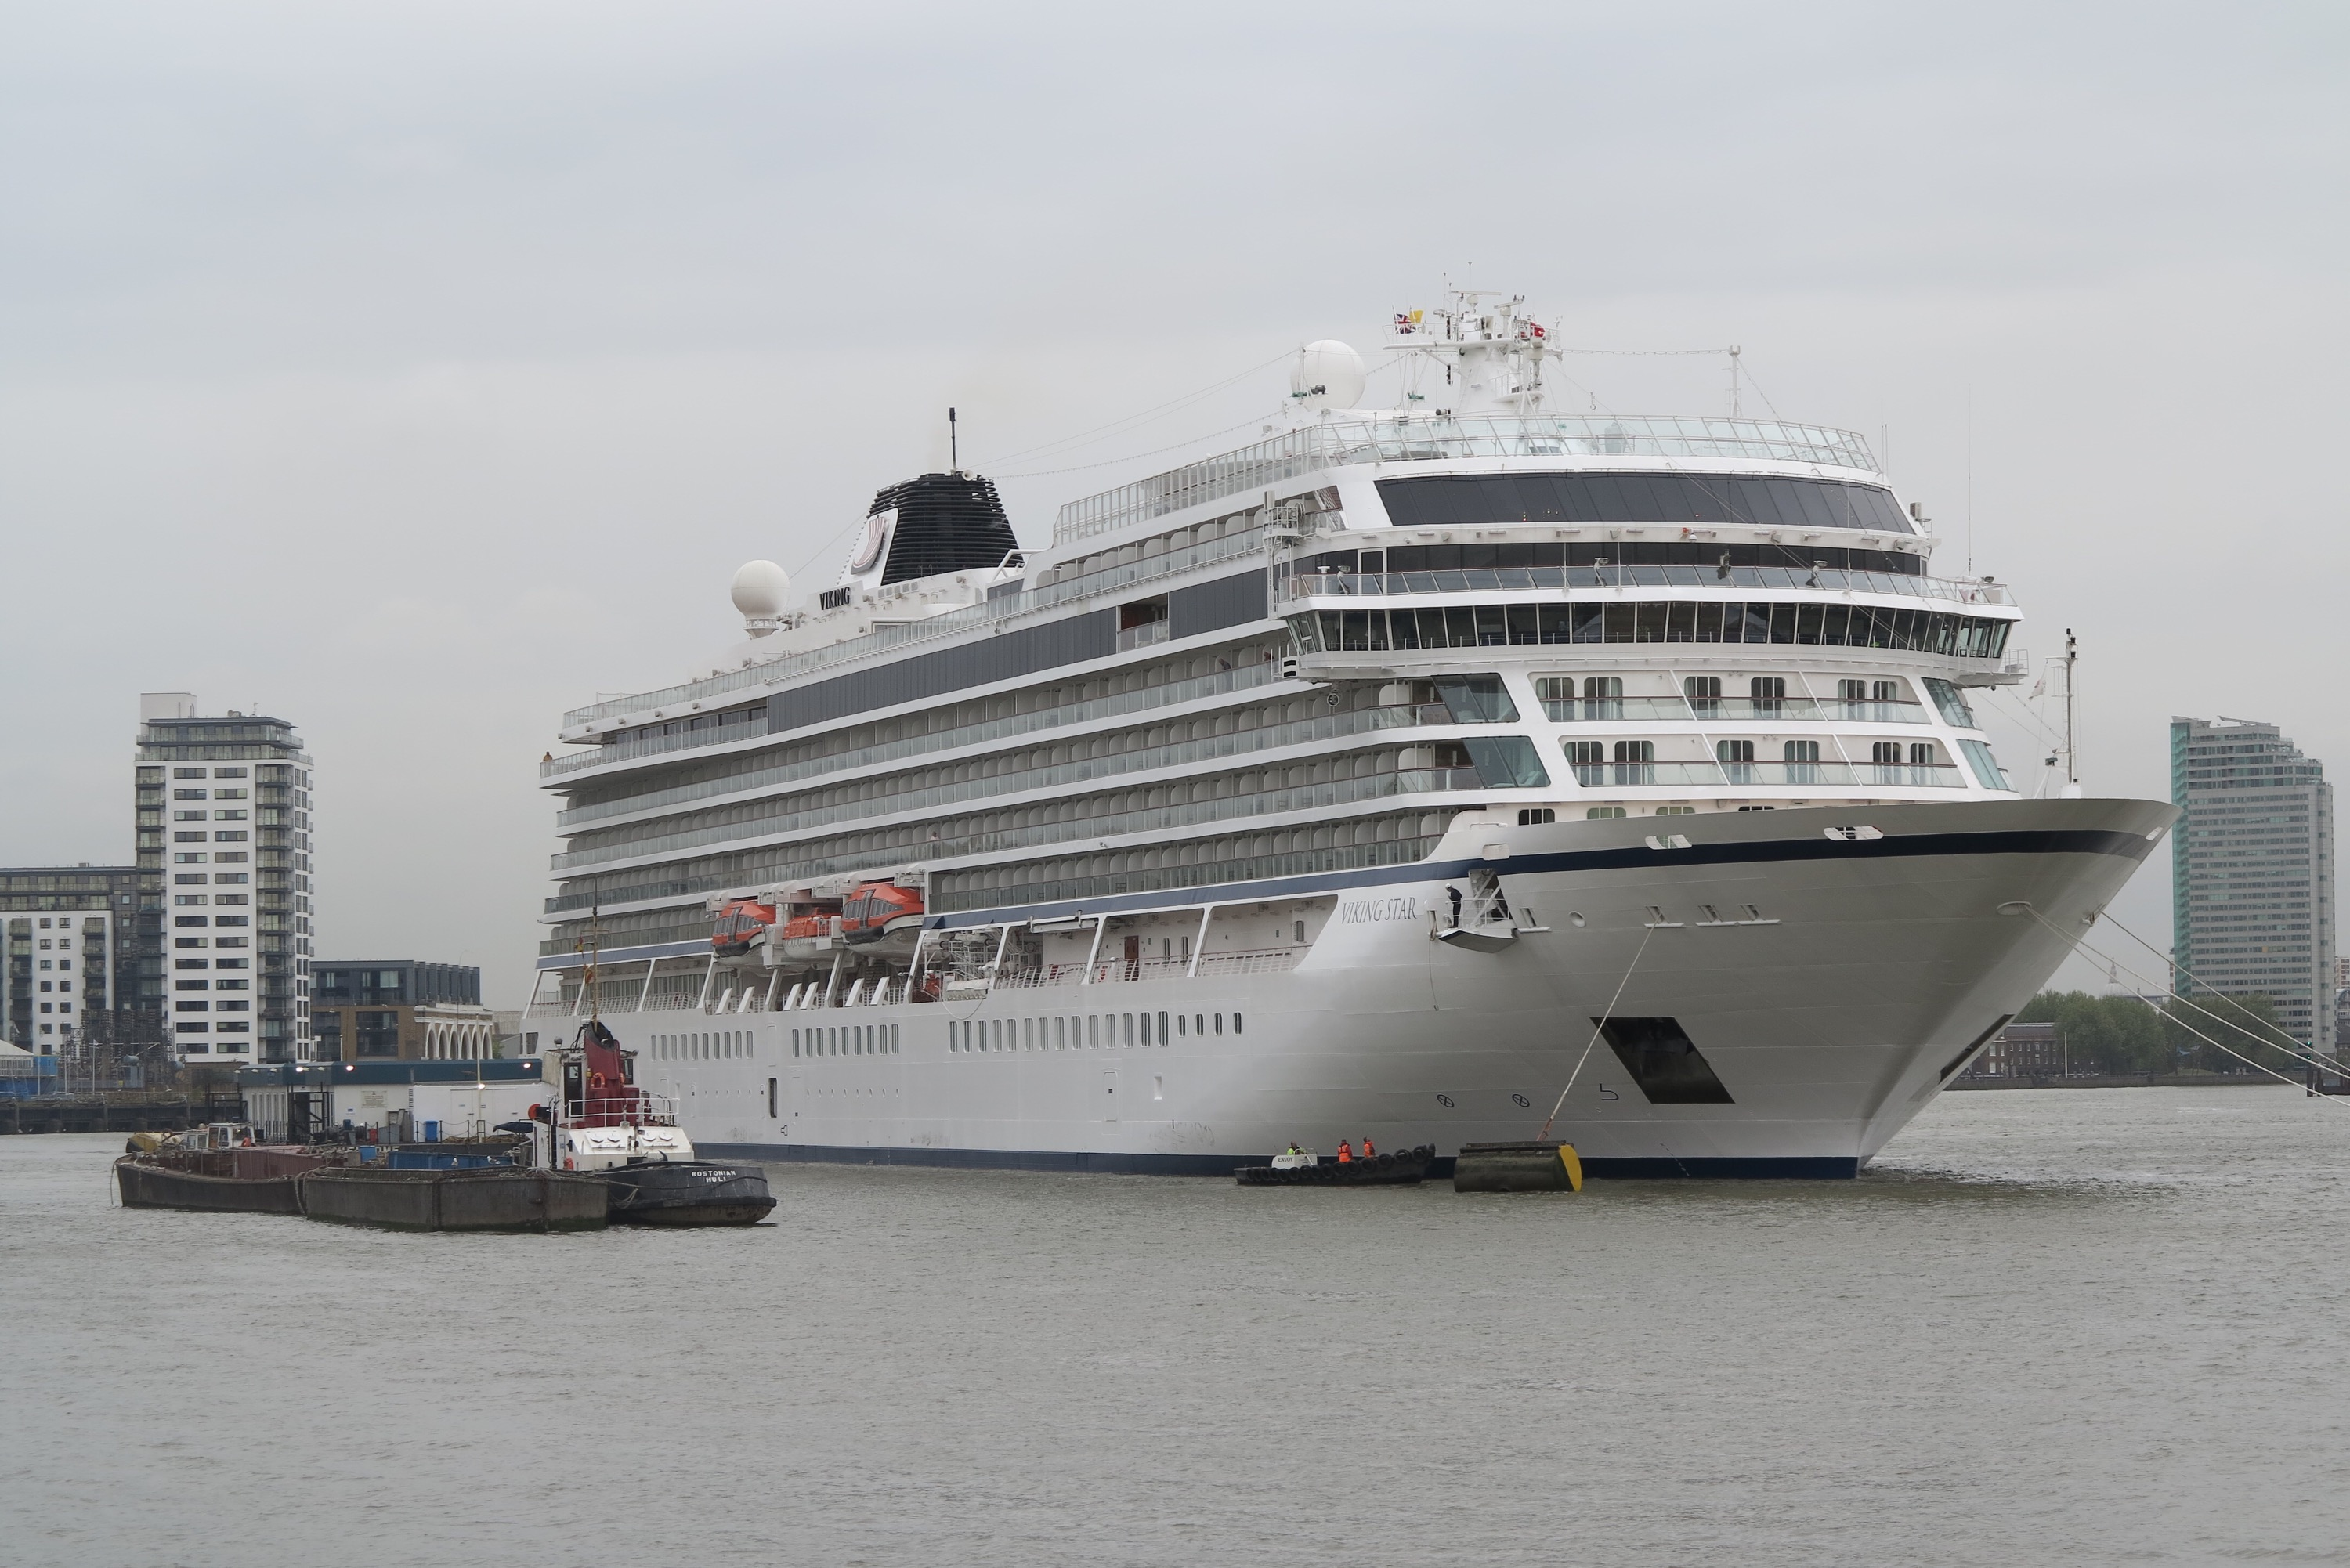 A Star Welcome Vikings New Oceangoing Ship Arrives In London - Cruise ship in london